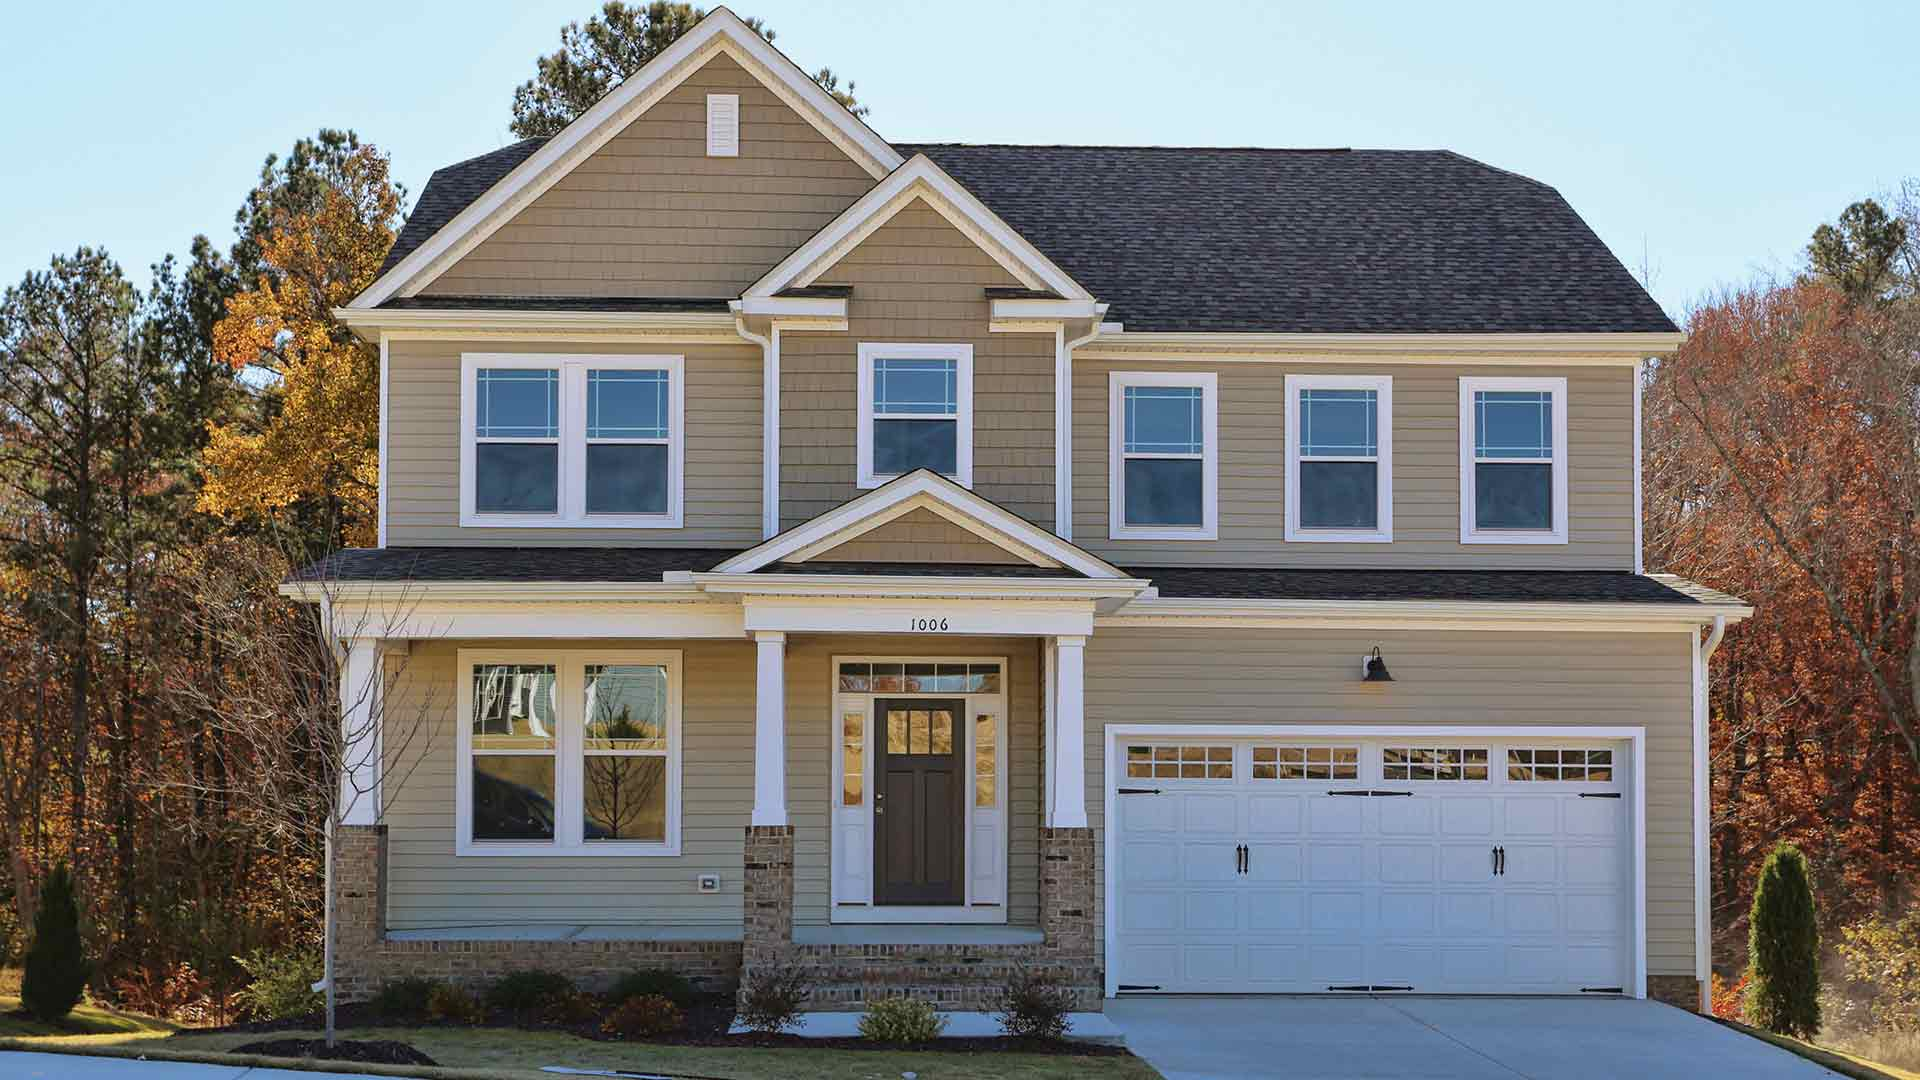 residential contracting services in Hillsborough NC roof repair & roof replacement